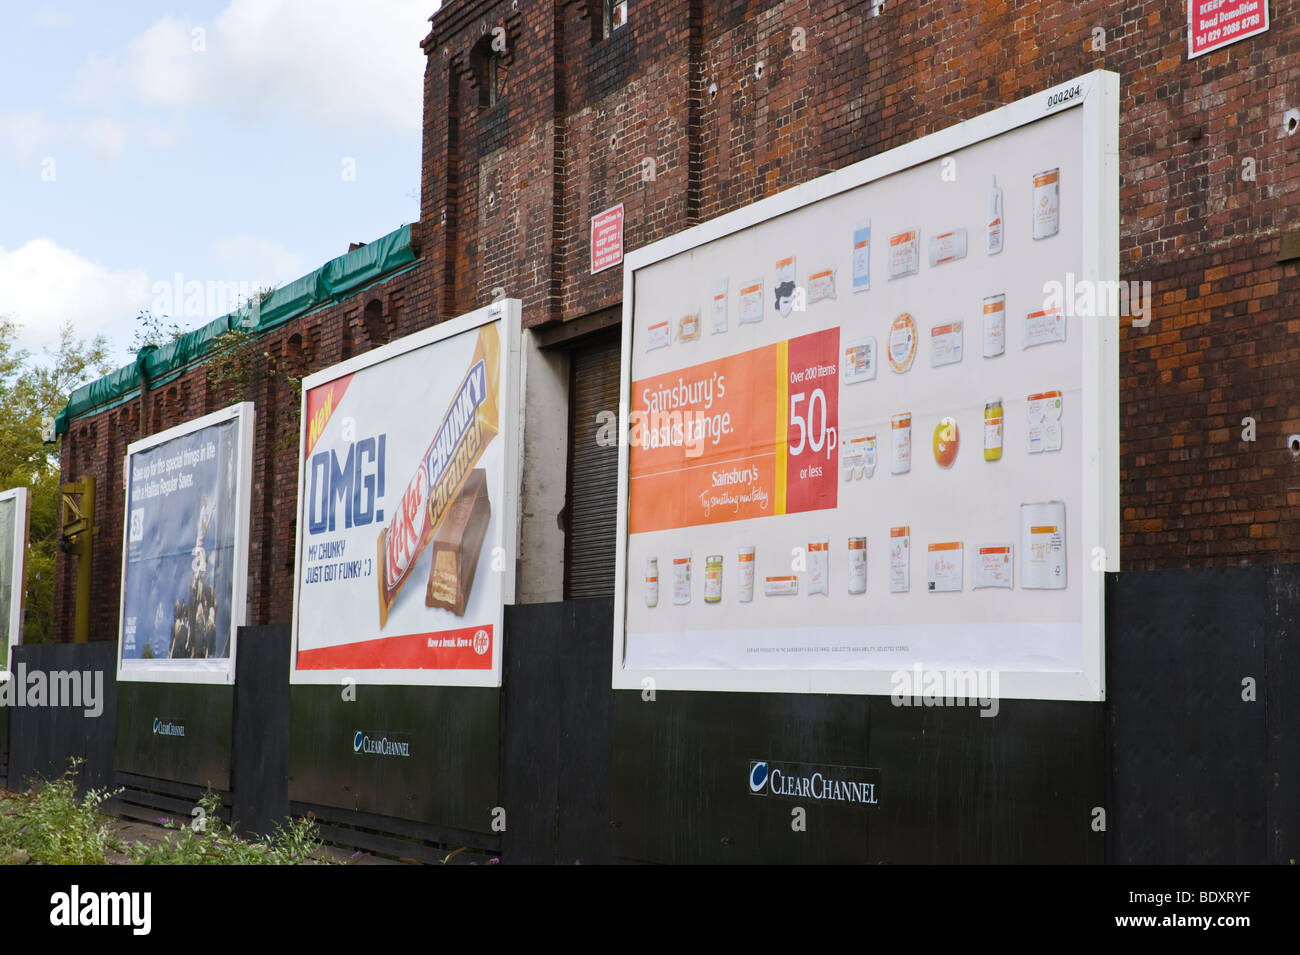 White apron sainsburys - Clearchannel Billboard For Halifax Kitkat And Sainsburys On Side Of Derelict Building In Uk Stock